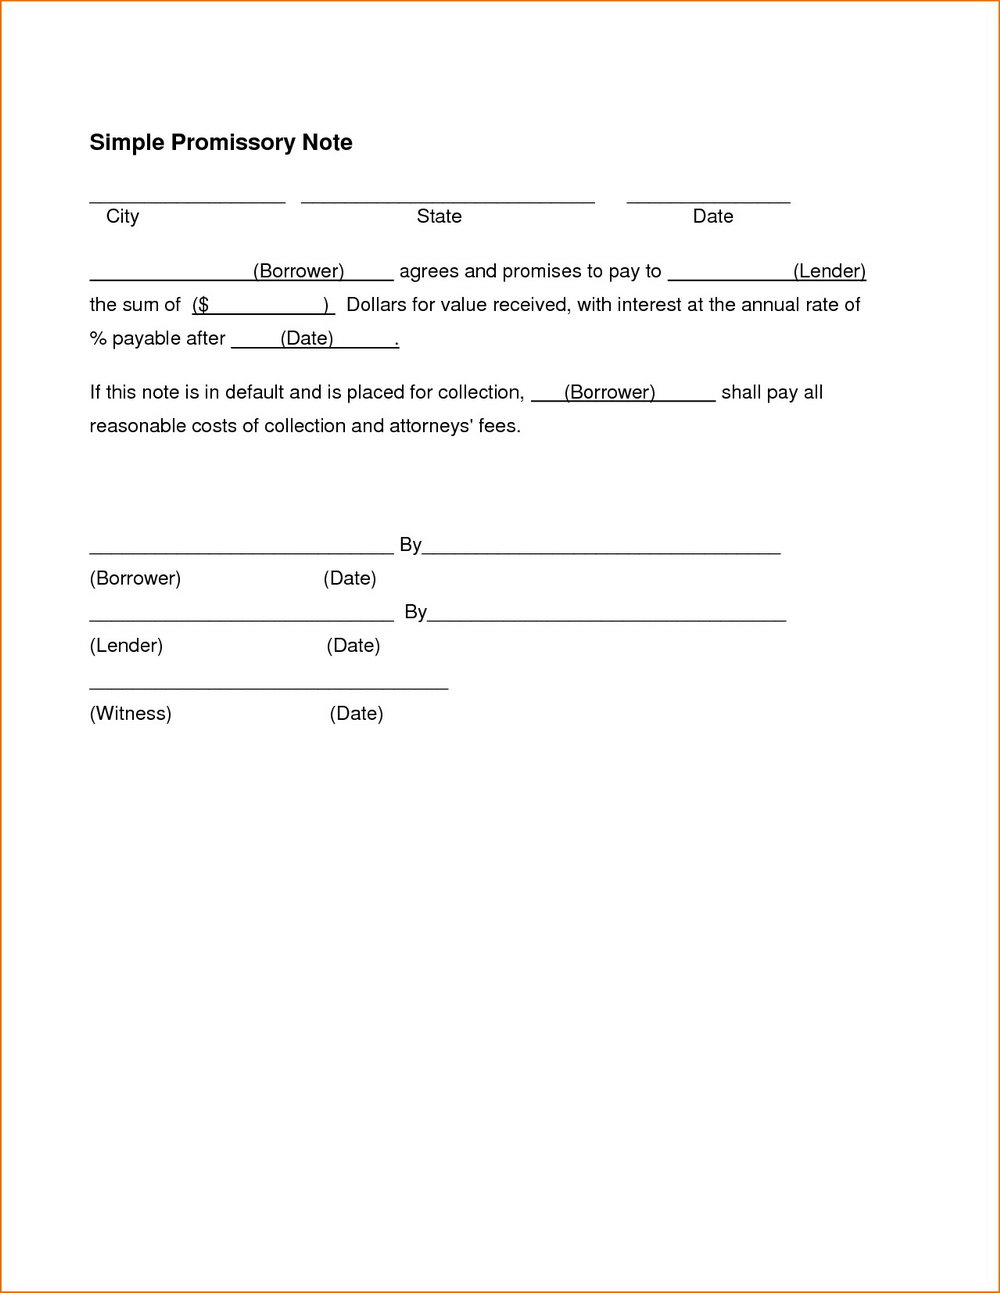 Simple Promissory Note Format